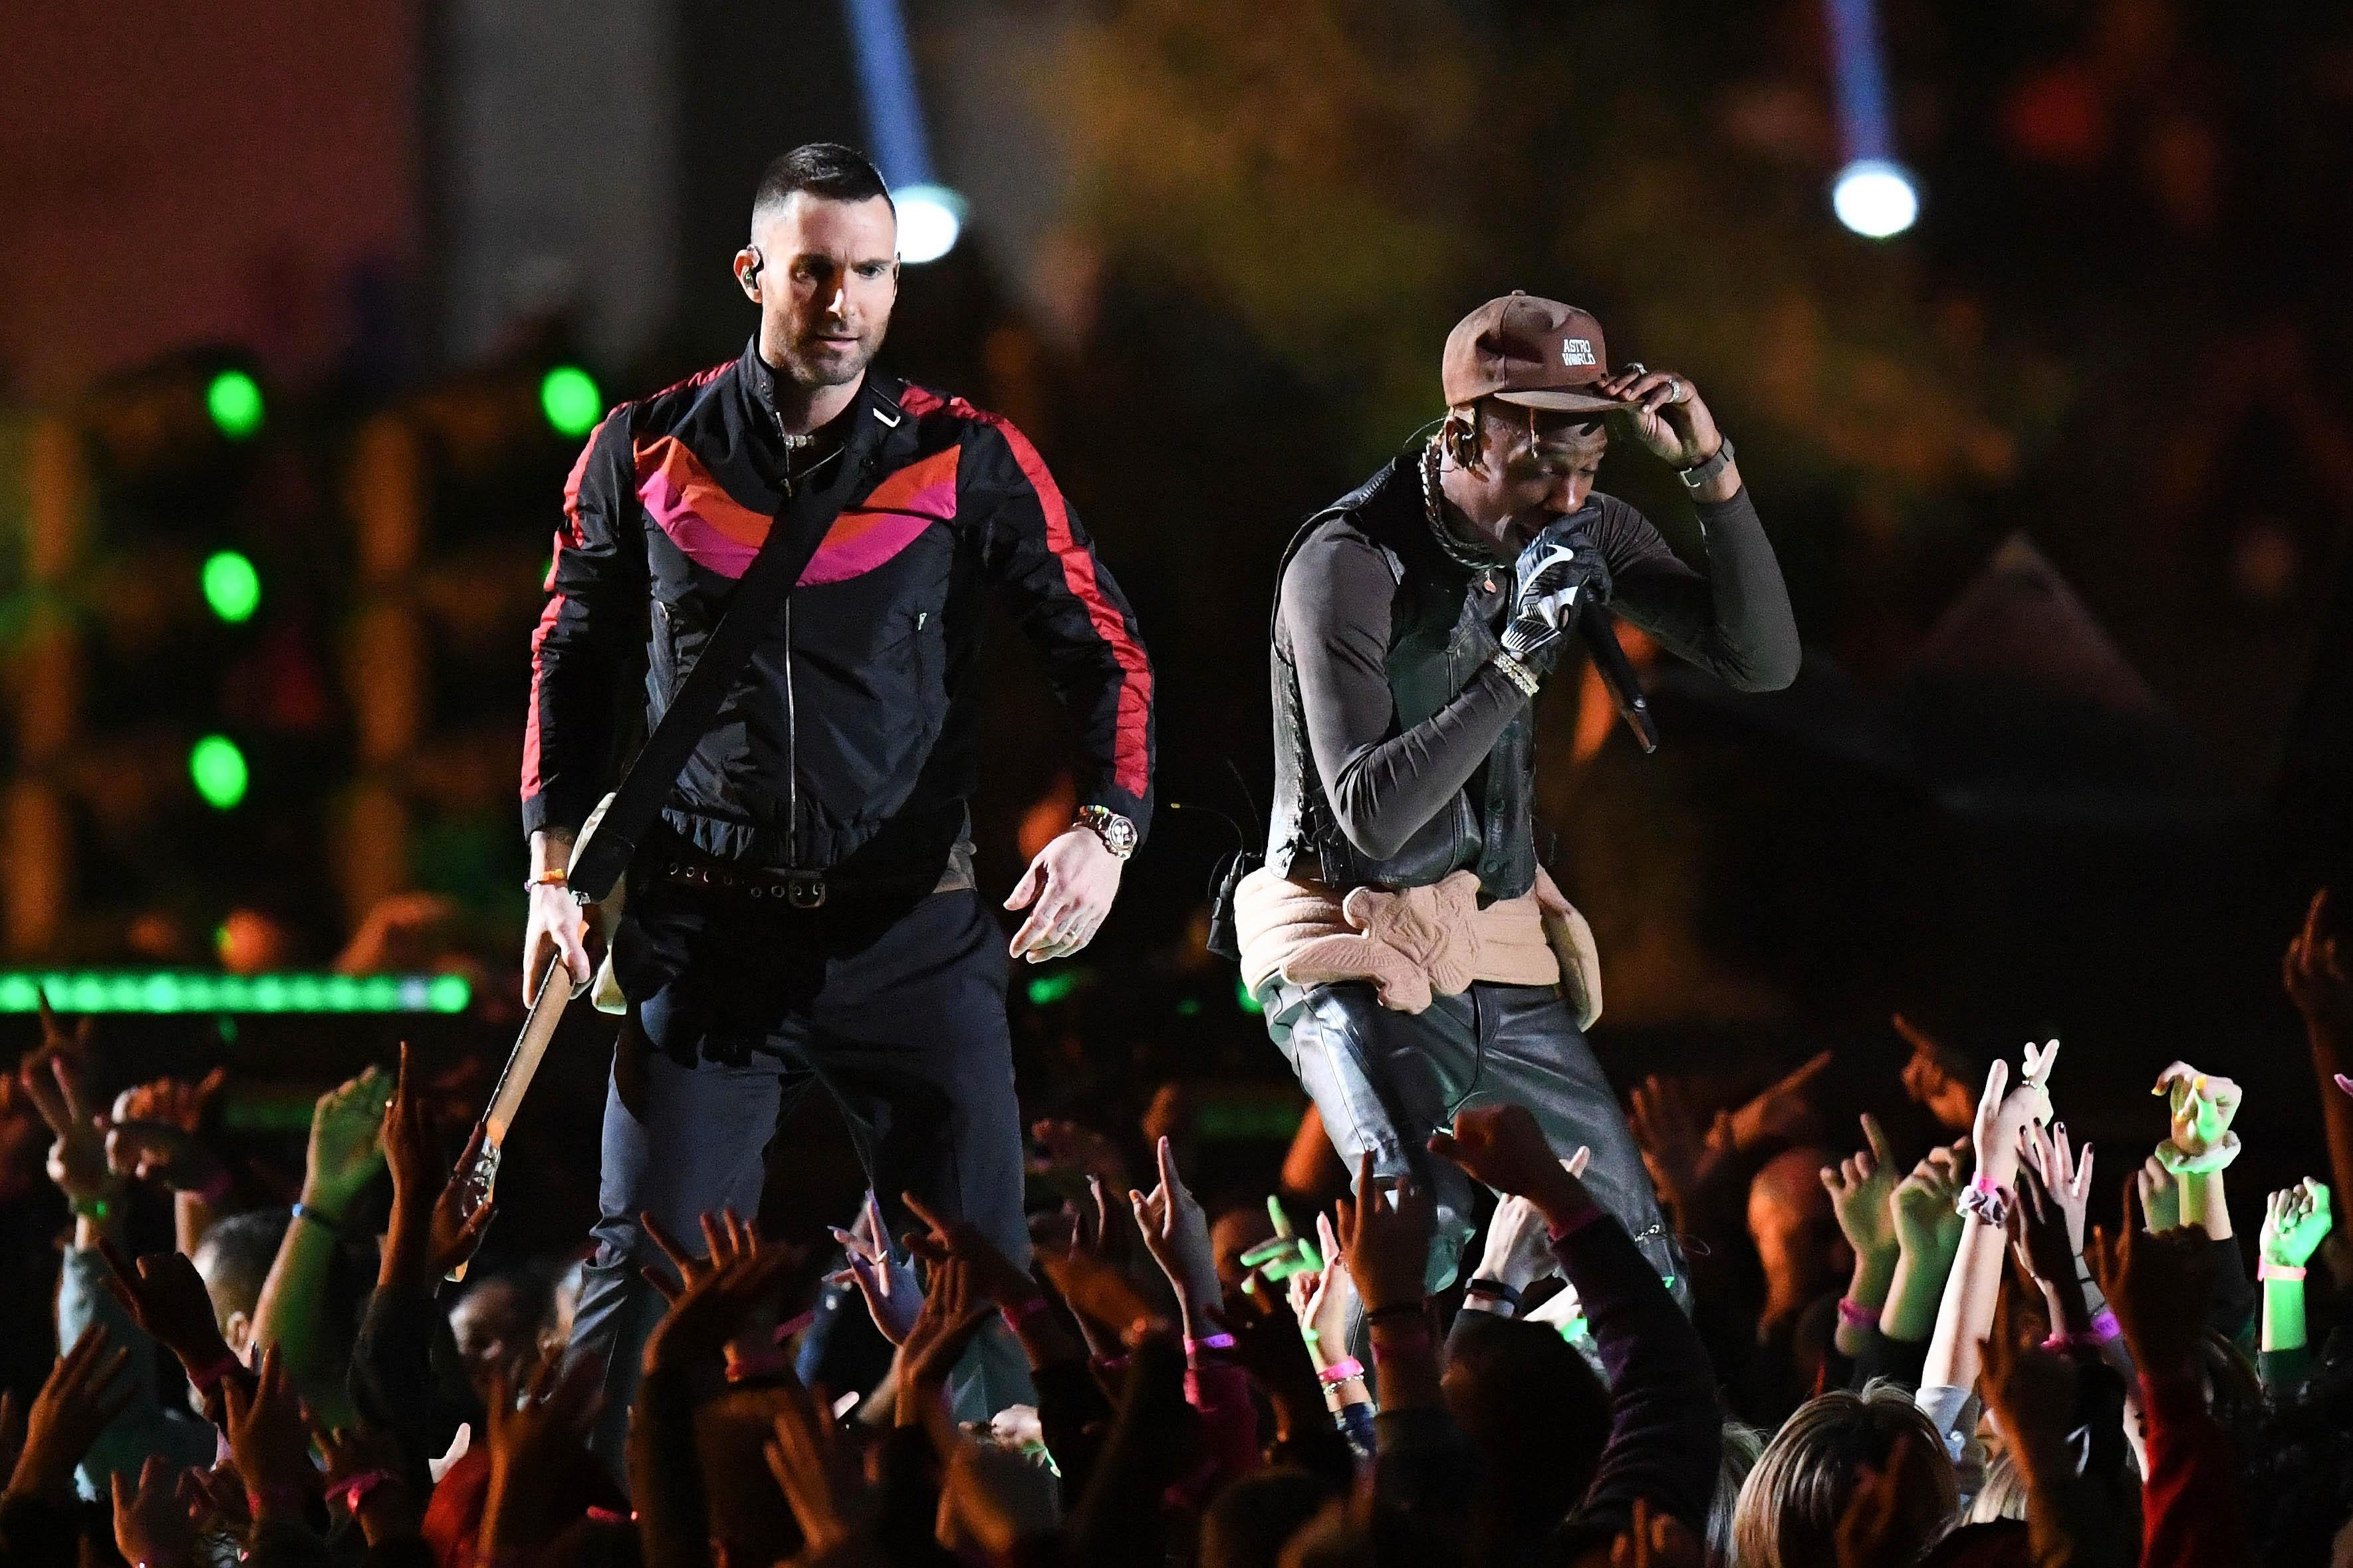 Super Bowl Halftime Show – Maroon 5 And Shirtless Adam with regard to Maroon 5 Travis Scott